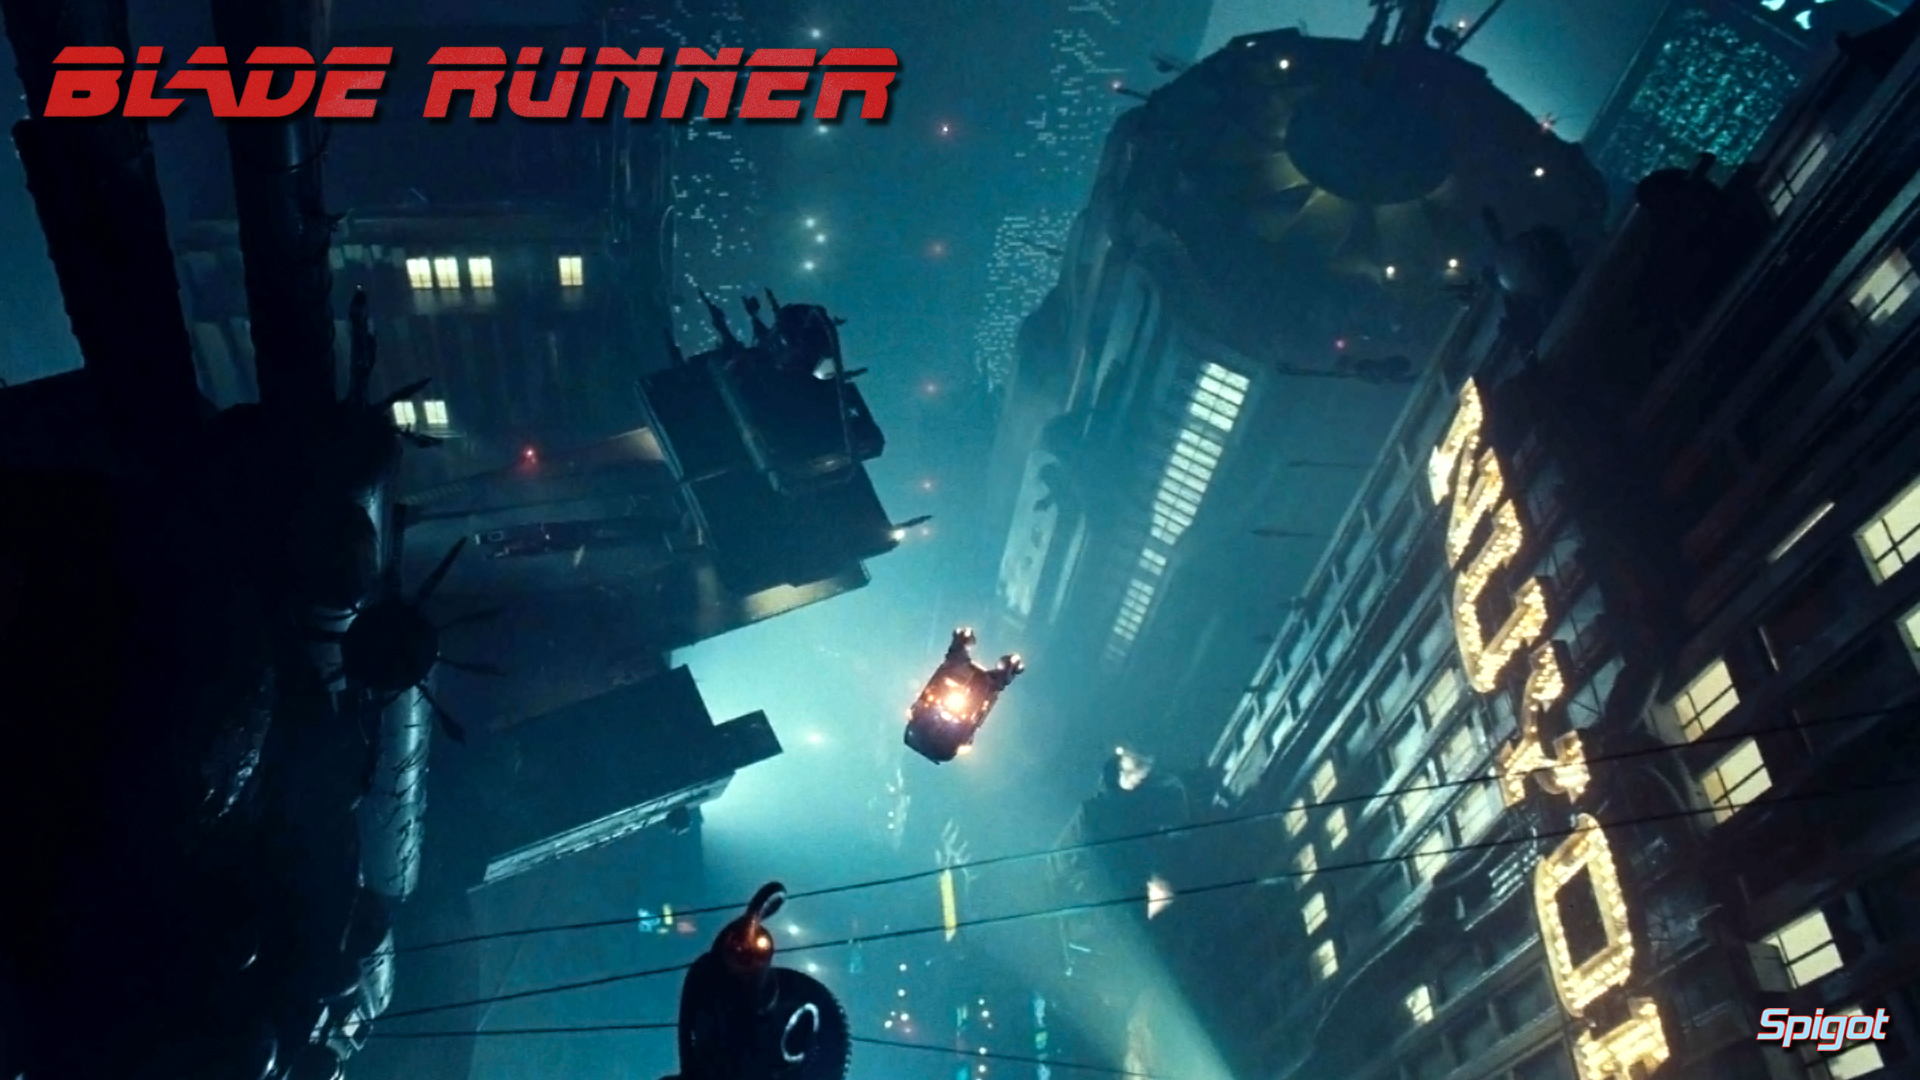 Blade Runner Wallpapers George Spigots Blog 1920x1080